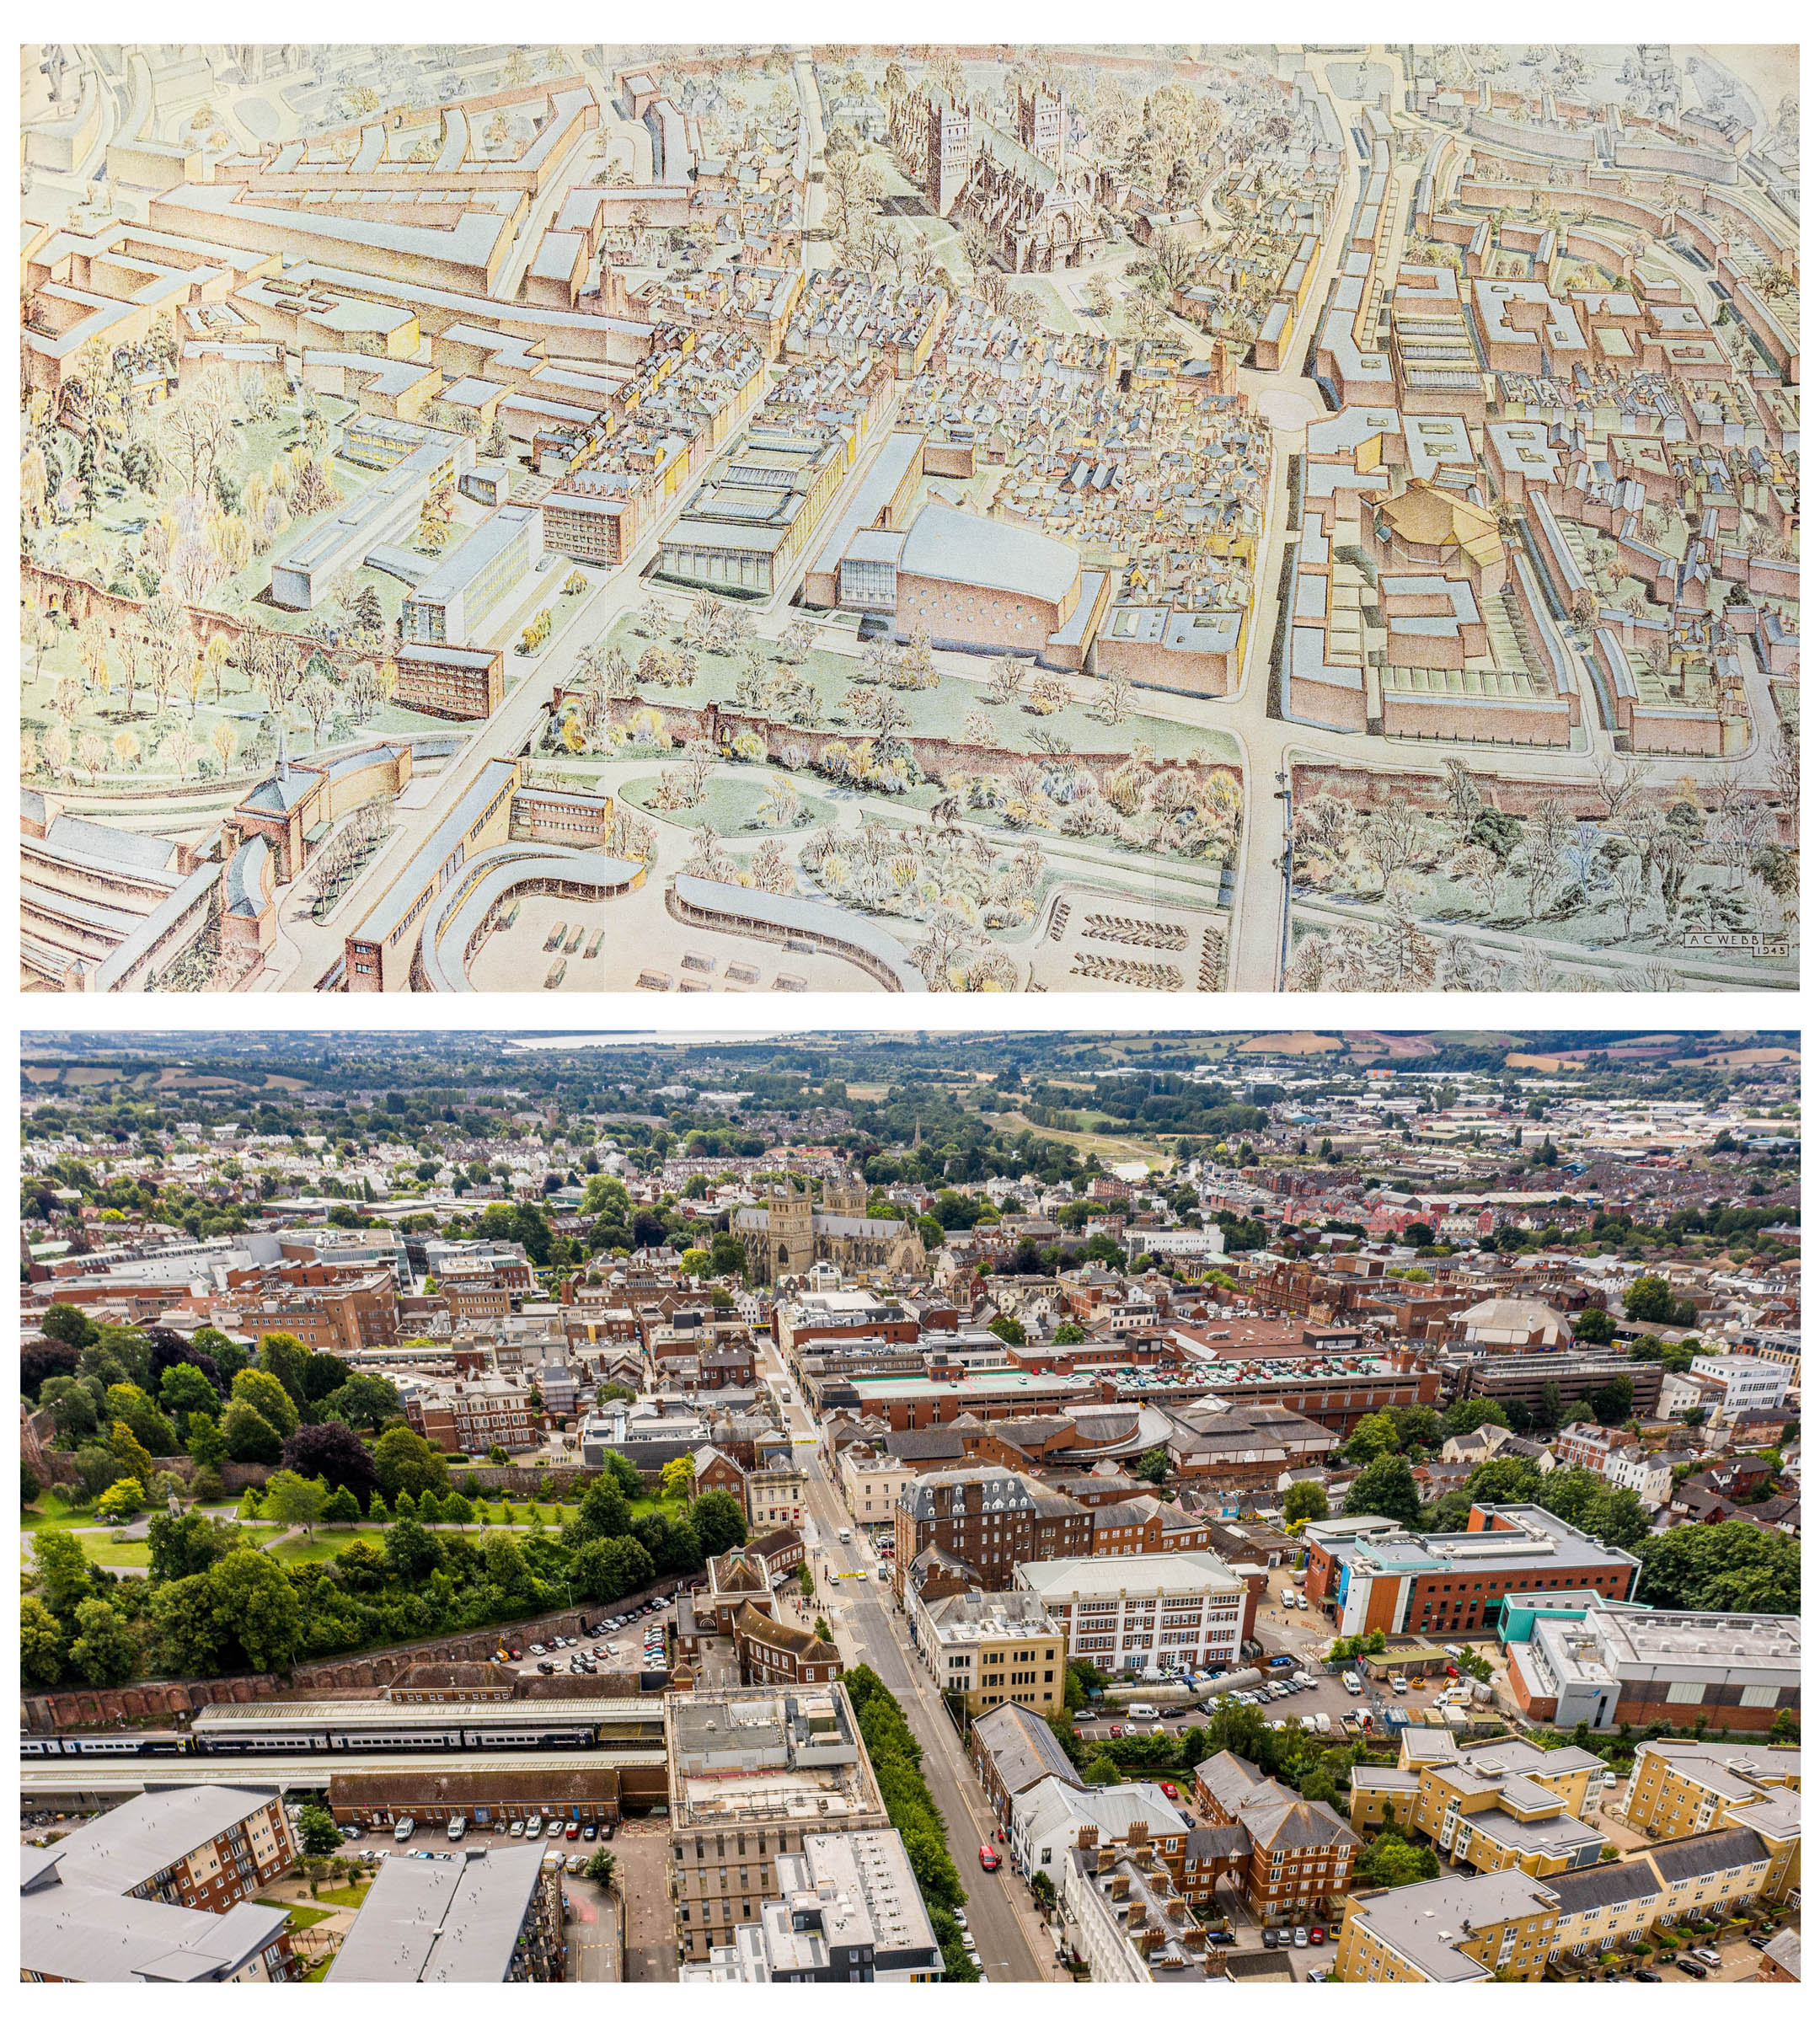 Thomas Sharp's drawing of what Exeter could have looked like, and an aerial photo of Exeter from Queen Street, Exeter.